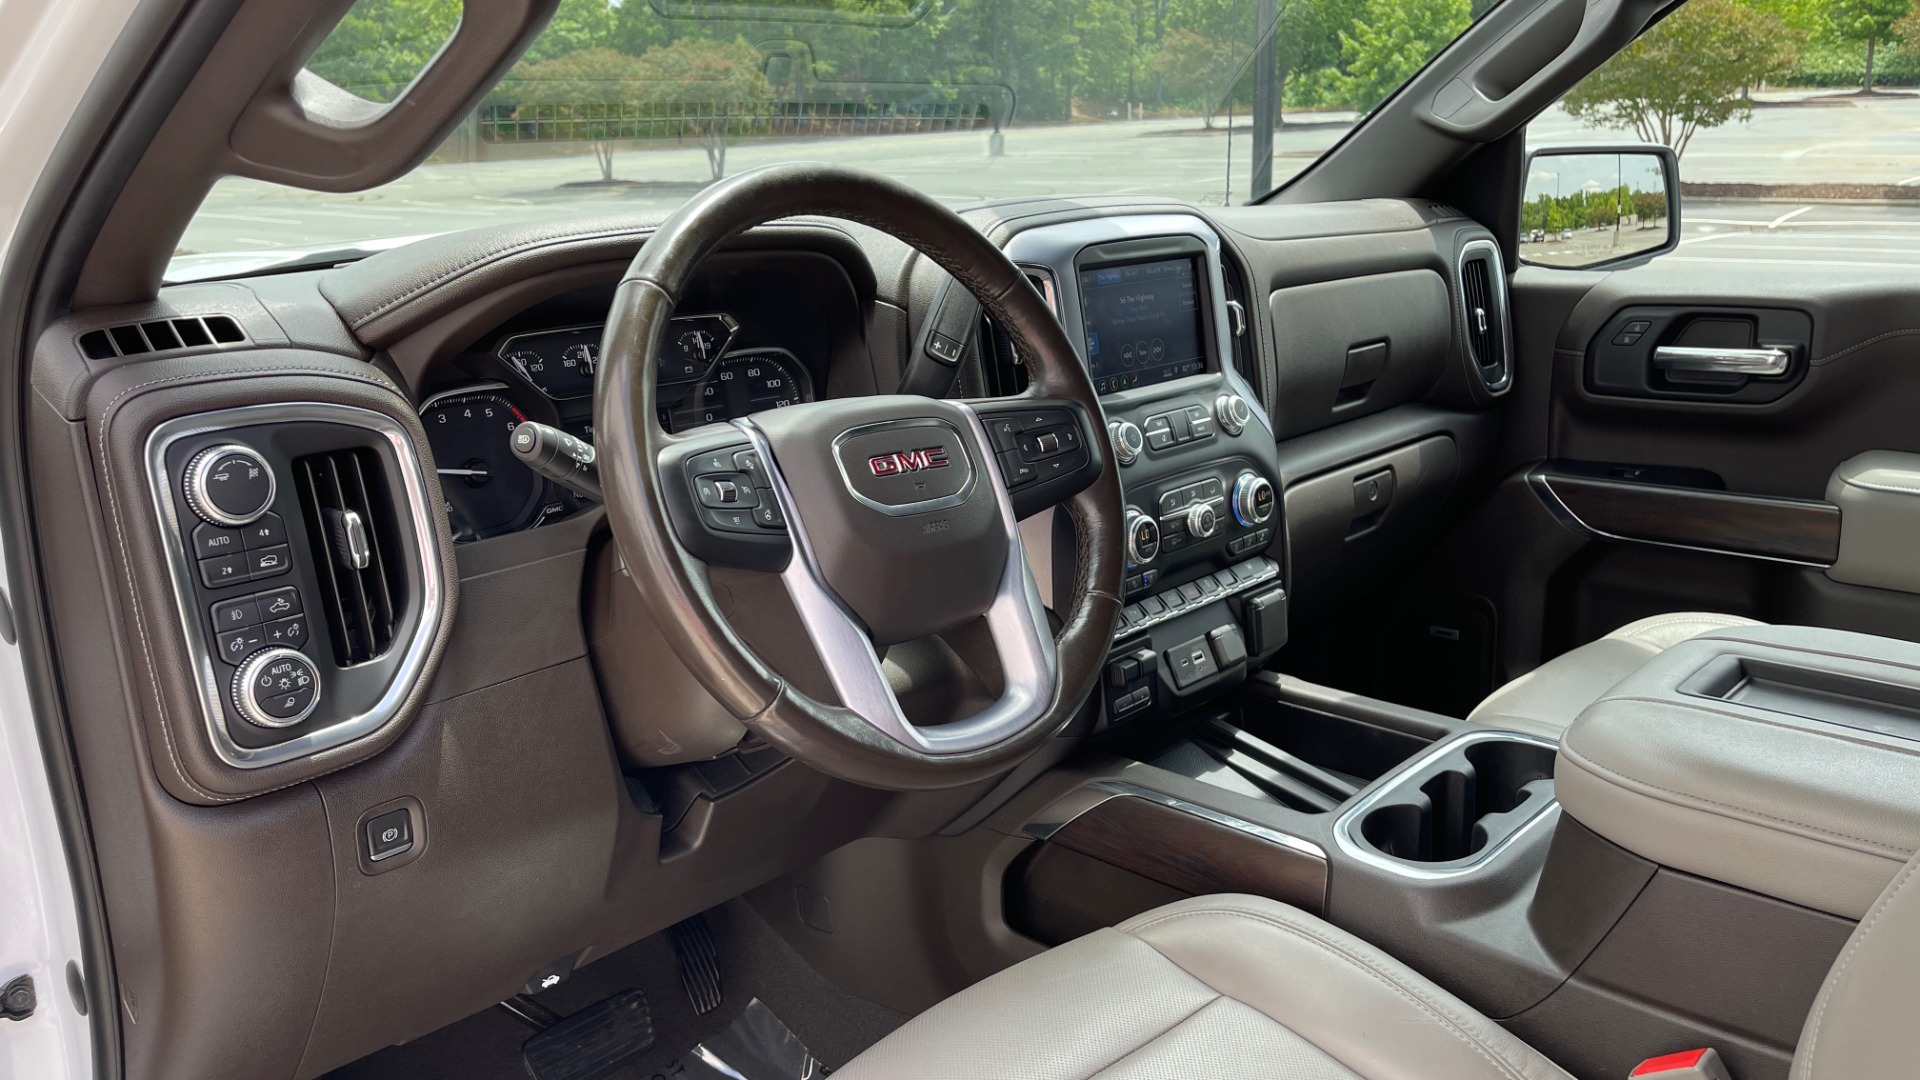 Used 2019 GMC SIERRA 1500 SLT 4X4 CREWCAB / 5.3L V8 / 8-SPD AUTO / NAV / BOSE / REARVIEW for sale $49,999 at Formula Imports in Charlotte NC 28227 37